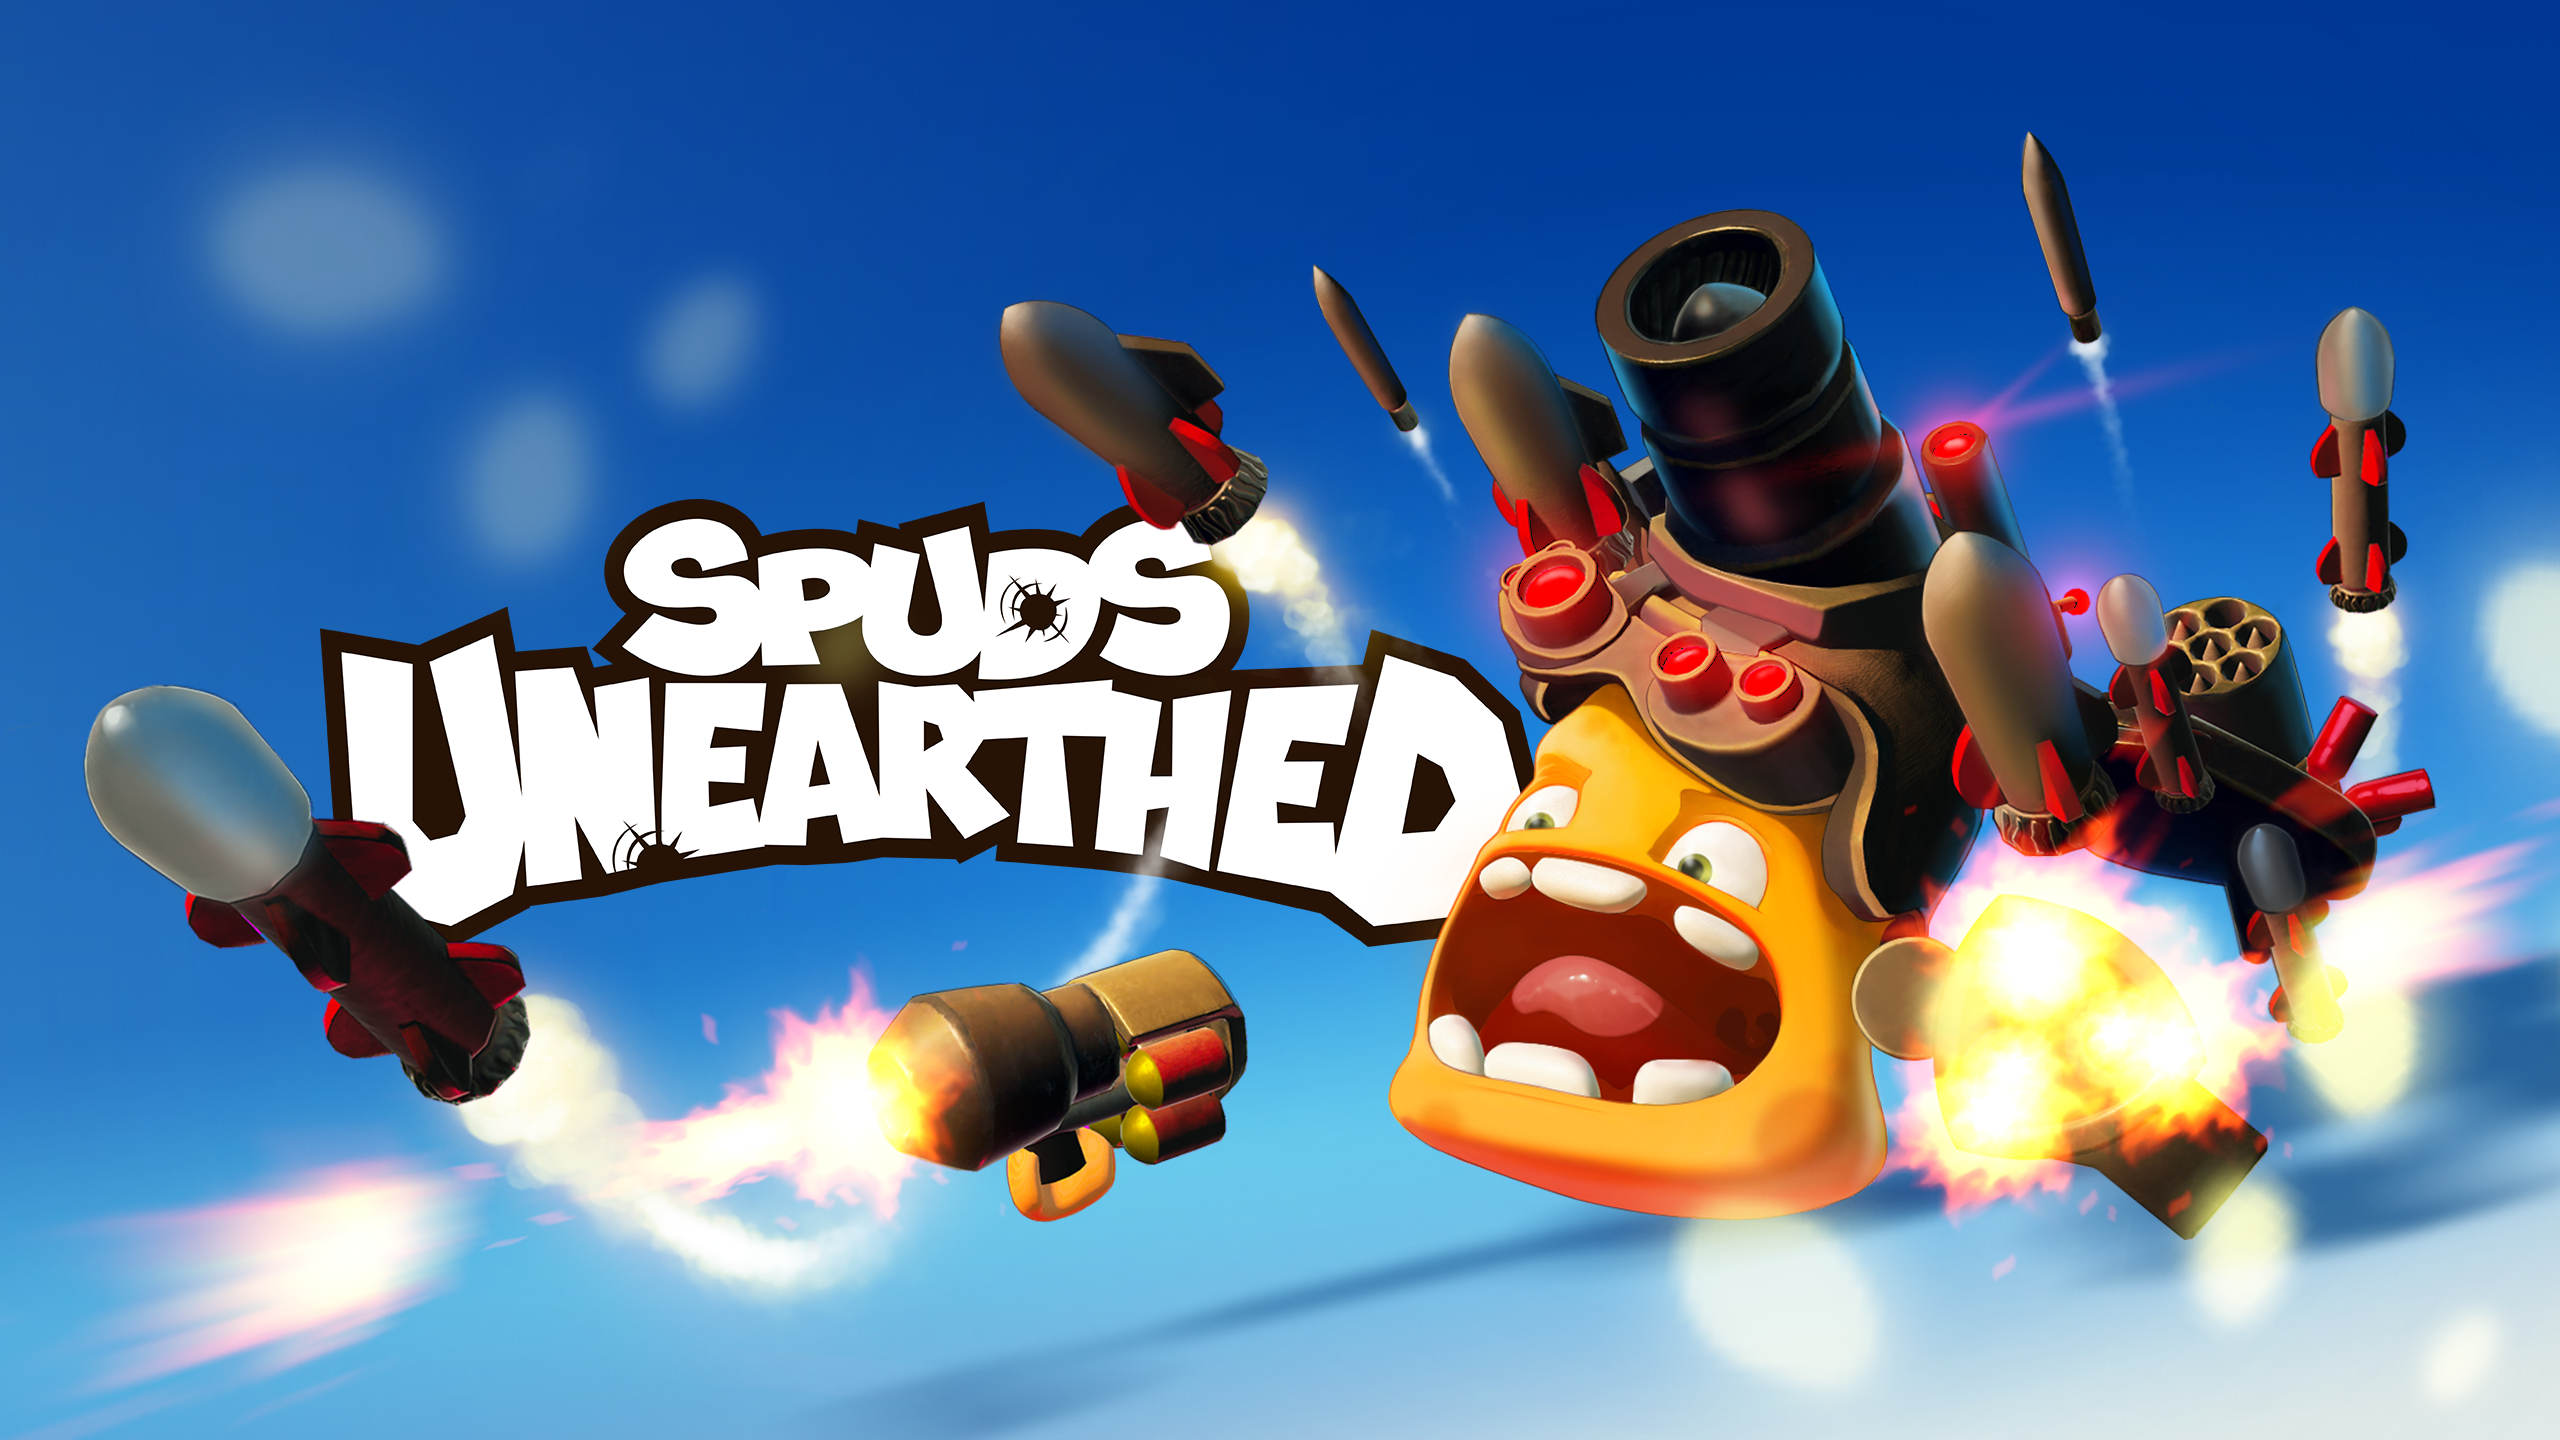 spuds-unearthed-keyart